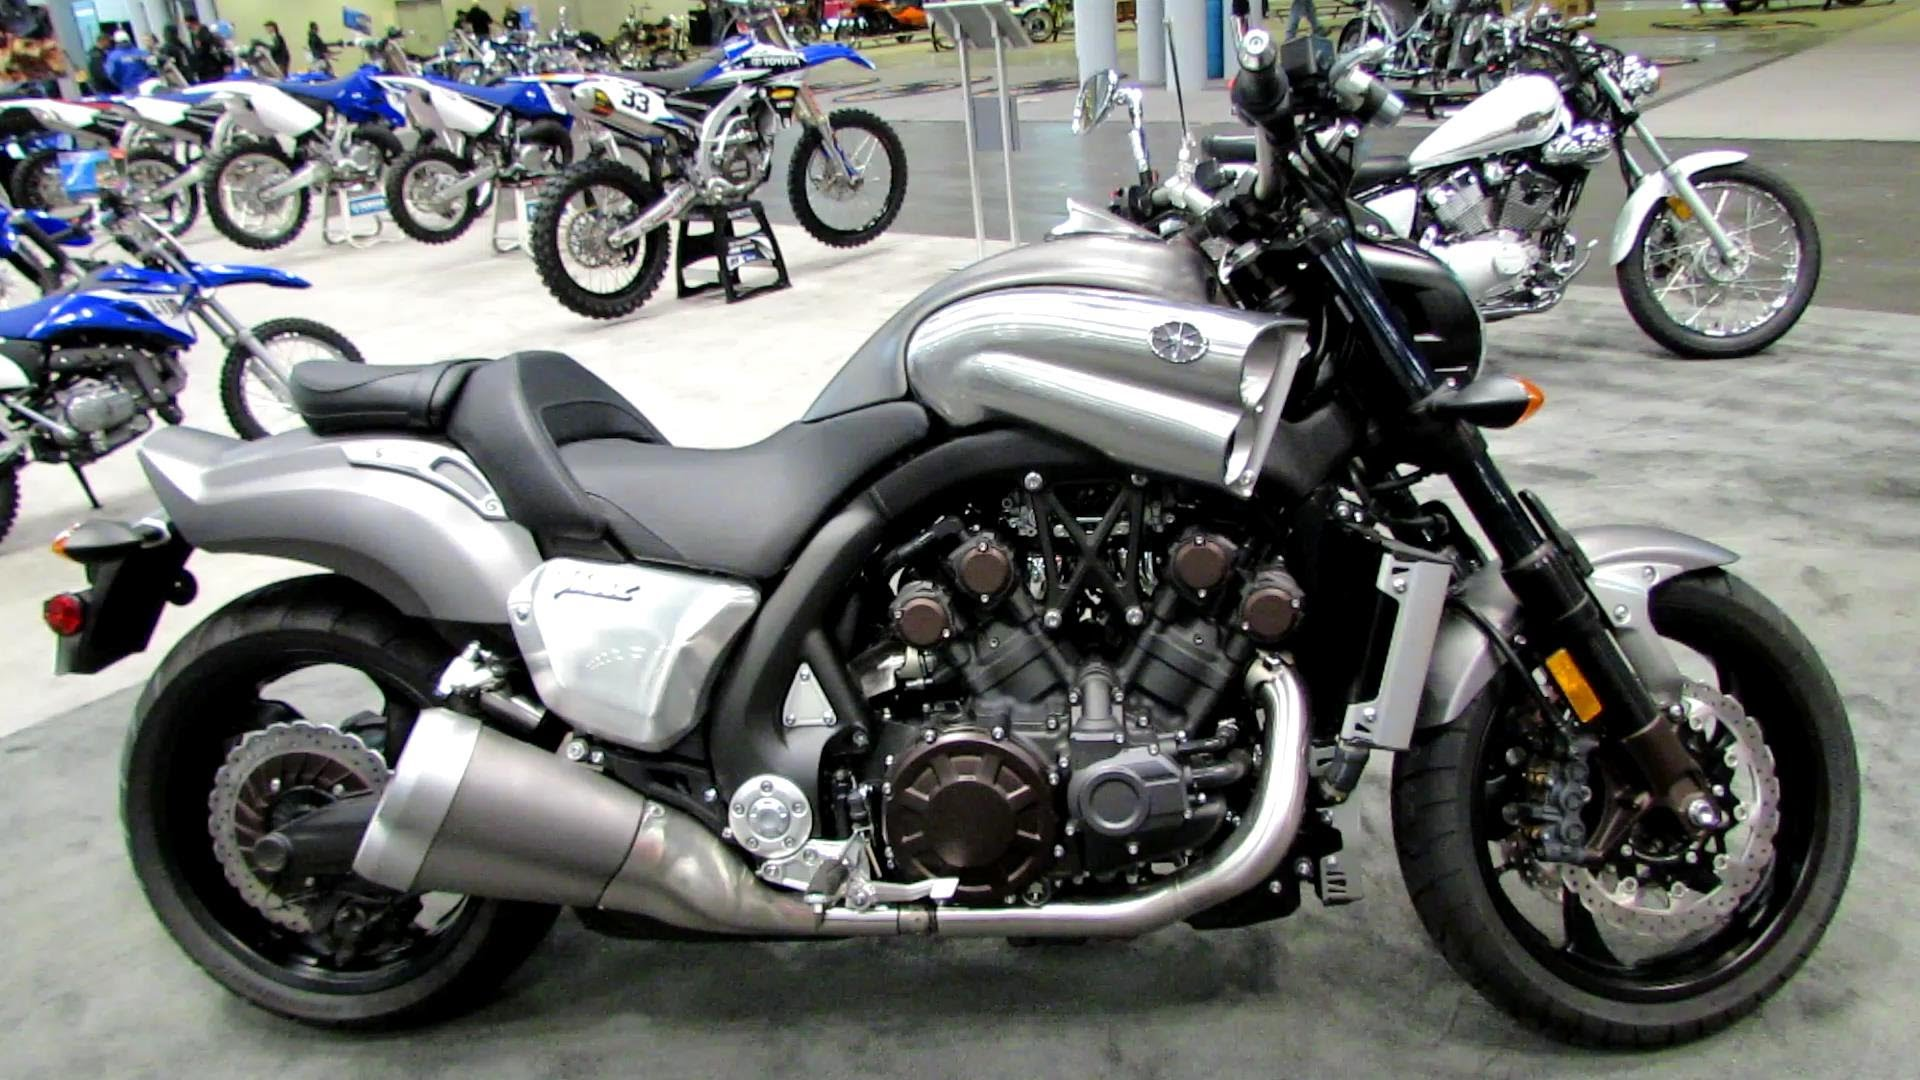 2013 Yamaha VMAX Photos, Informations, Articles - Bikes